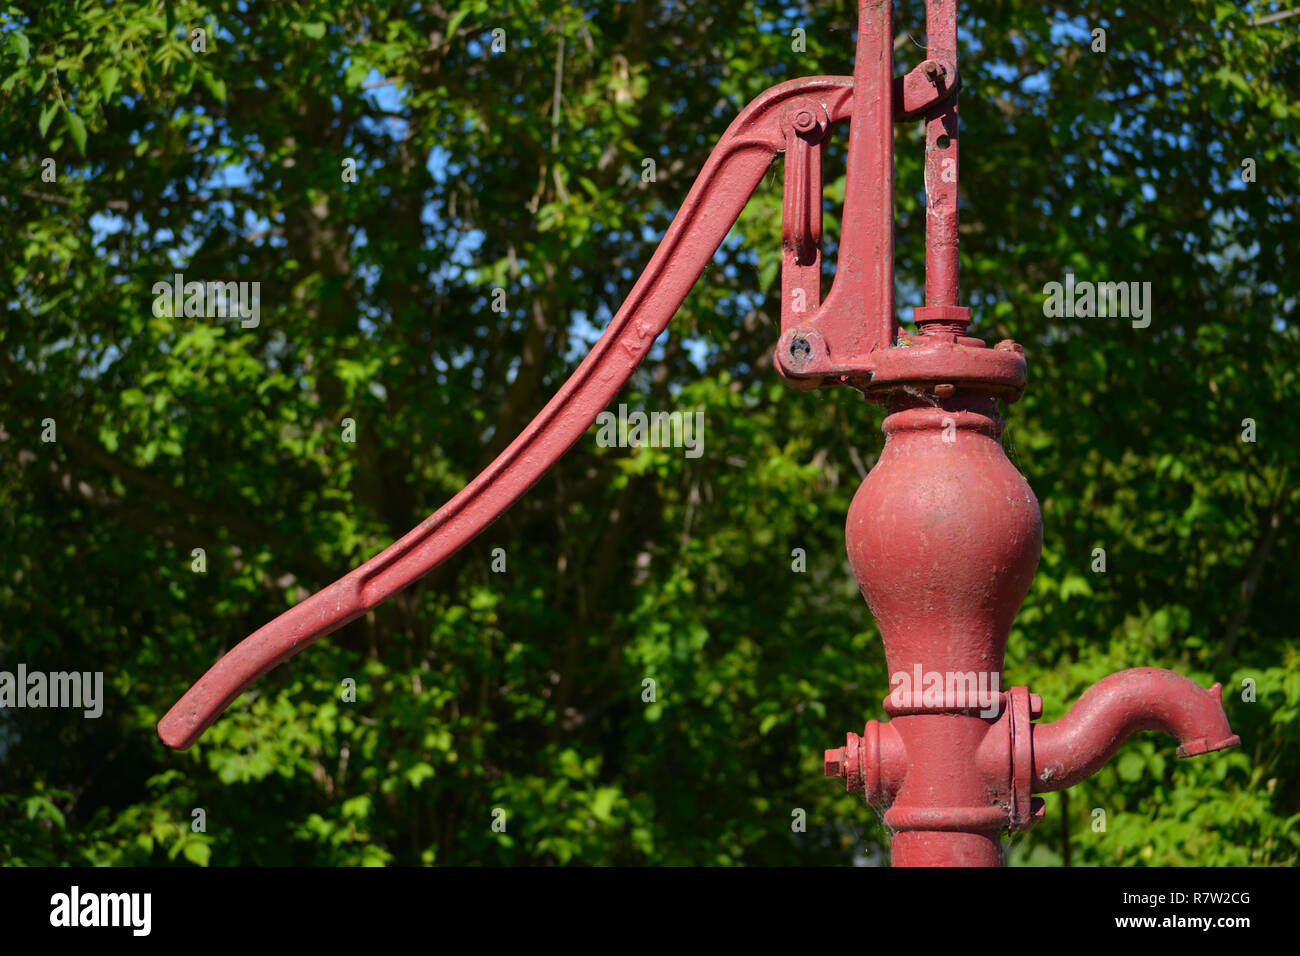 Hand water pump with farm yard shelter trees - Stock Image